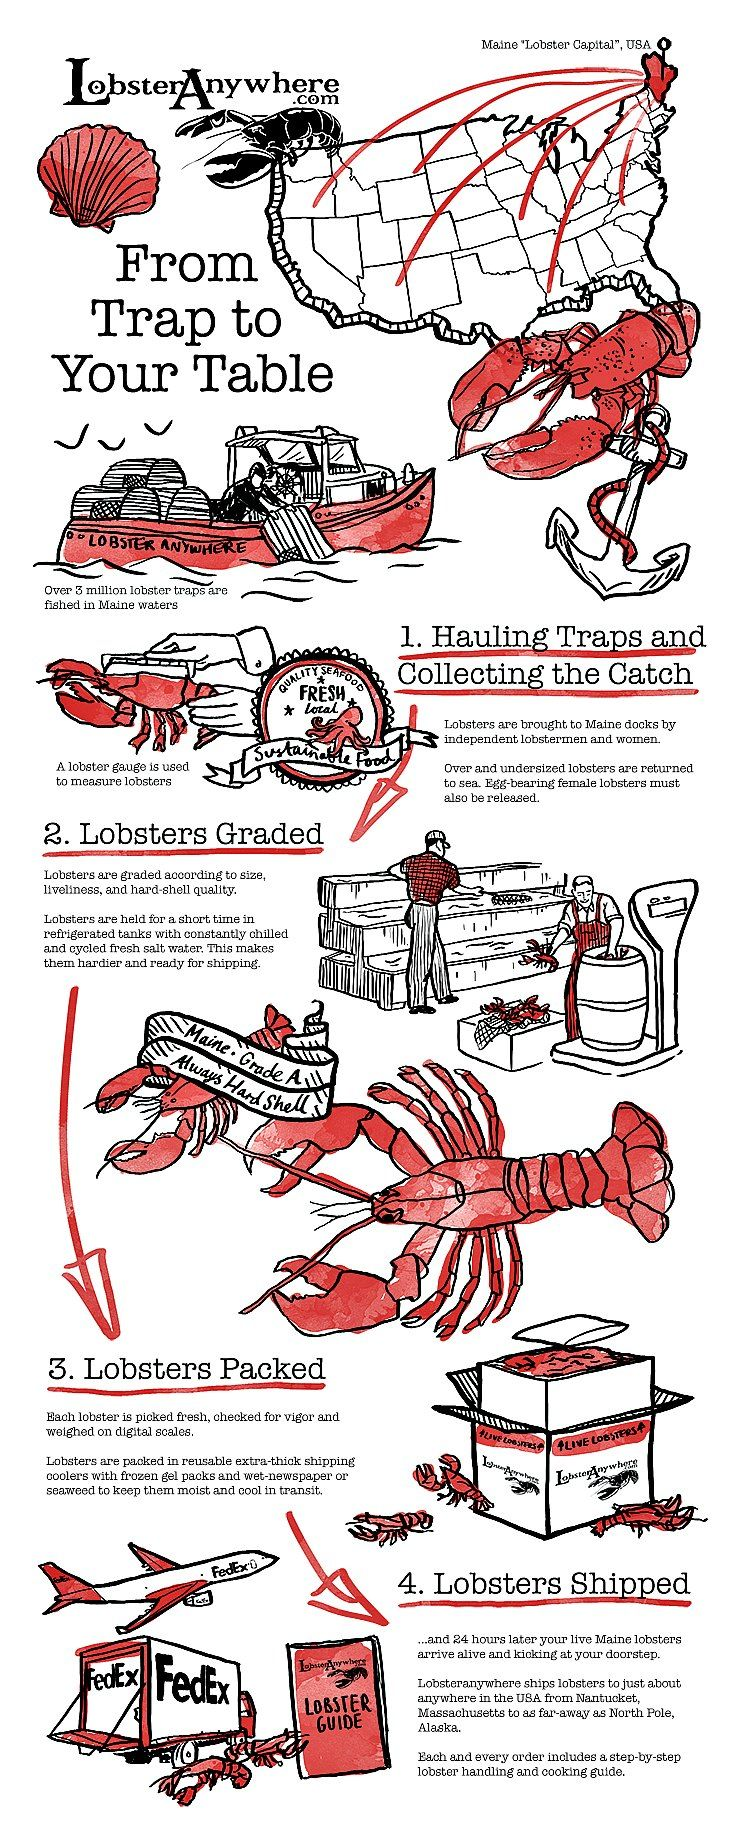 Looking for a good lobster deal? Ask for a cull, lobsters missing one claw. Culls are good for a recipe calling for cooked lobster meat [Lobster Recipes, Lobster, Fresh Seafood, Lobster Tail] https://lobsteranywhere.com Live Maine lobster delivery direct from LobsterAnywhere. New England's mail order premium seafood company online since 1999 with ocean fresh and frozen lobster on sale for your business or special event. Guaranteed overnight USA. Orders guaranteed. #Lobster #Recipe #Seafood